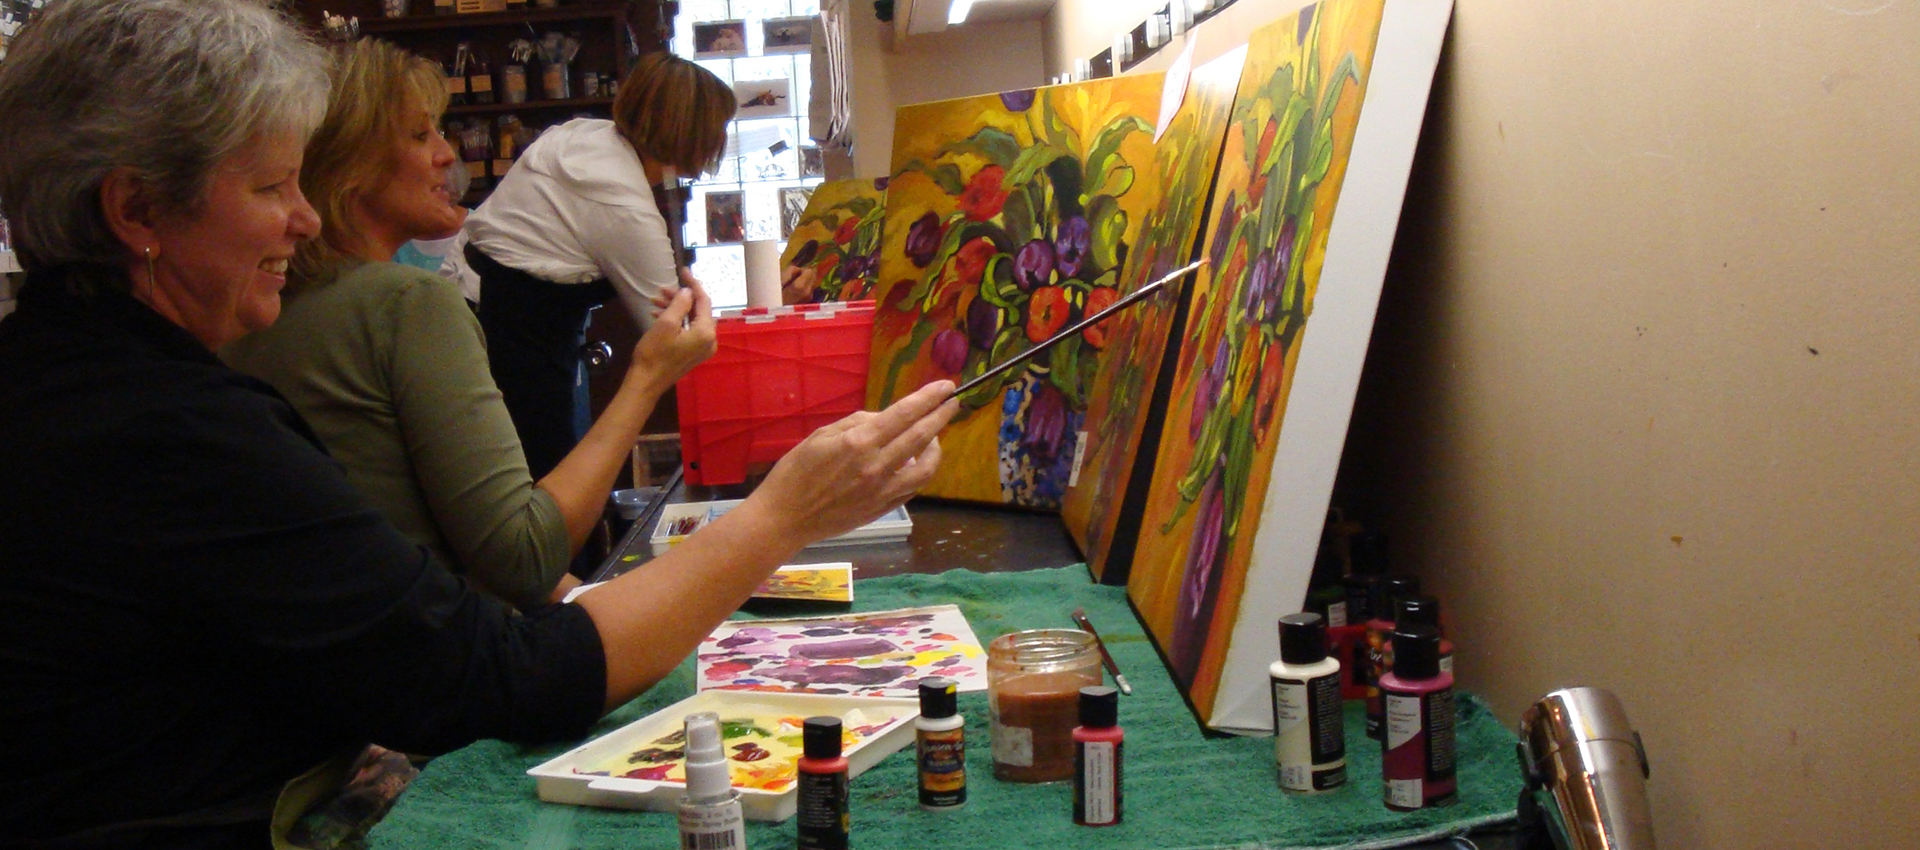 Students Painting 4